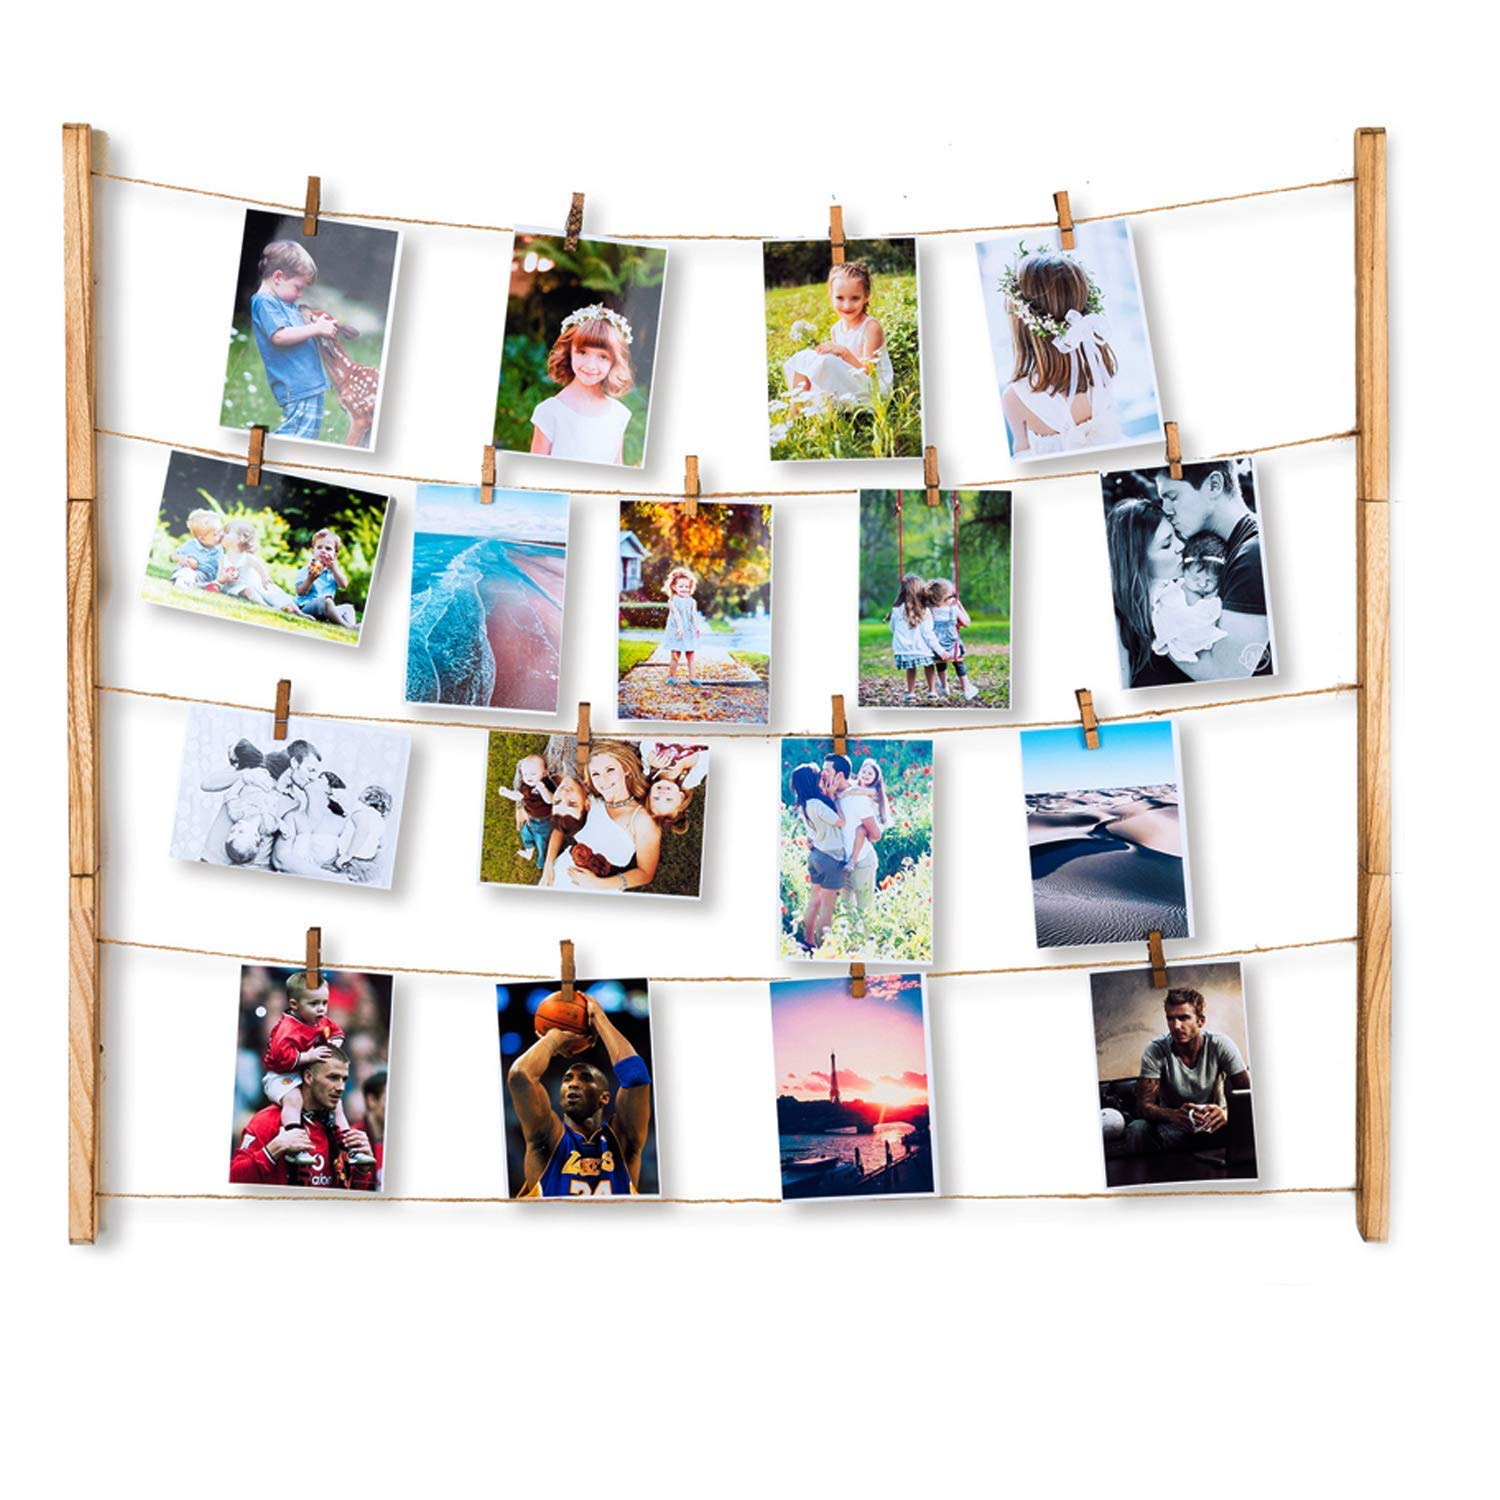 Kitlit Hanging Photo Display Wall with 30 Clips,DIY Picture Frame Collage Set Organizer Includes Wood Strips,Hanging Wire,Wood Clips,Picture Frames&Prints Multi Photos Organizer&Collage Artworks&Baby